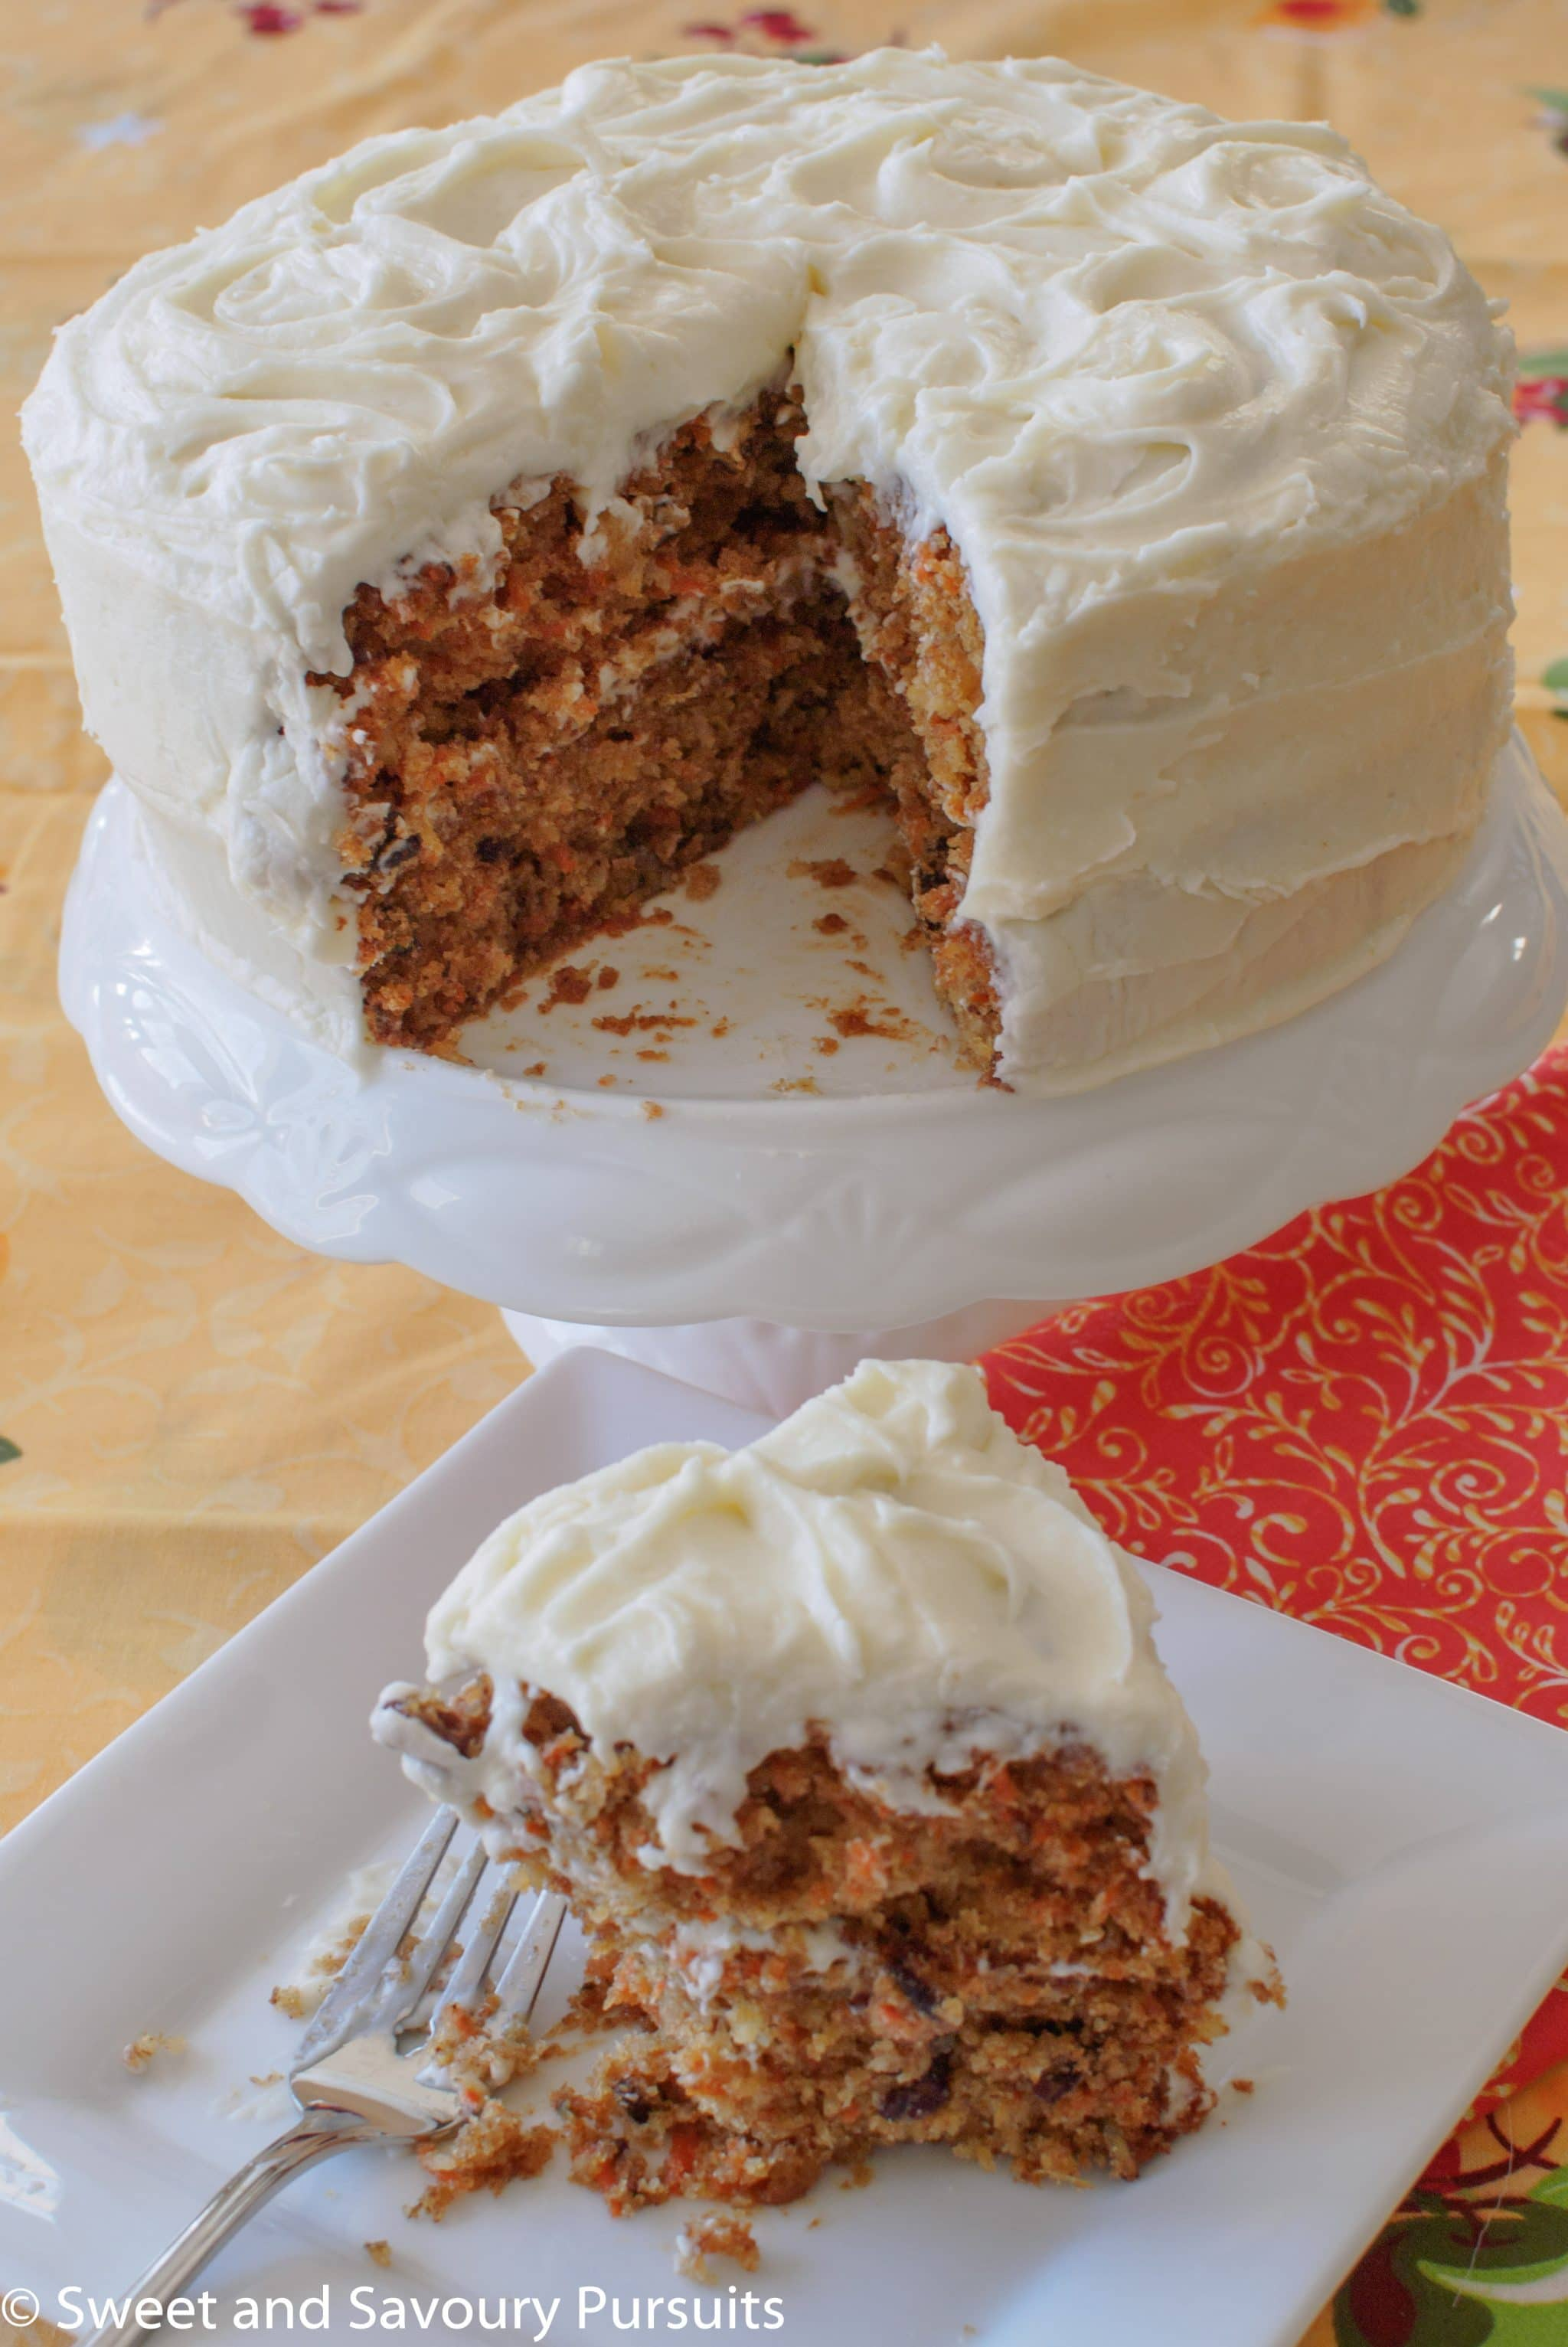 Carrot Cake with Cream Cheese Frosting on platter with slice removed.